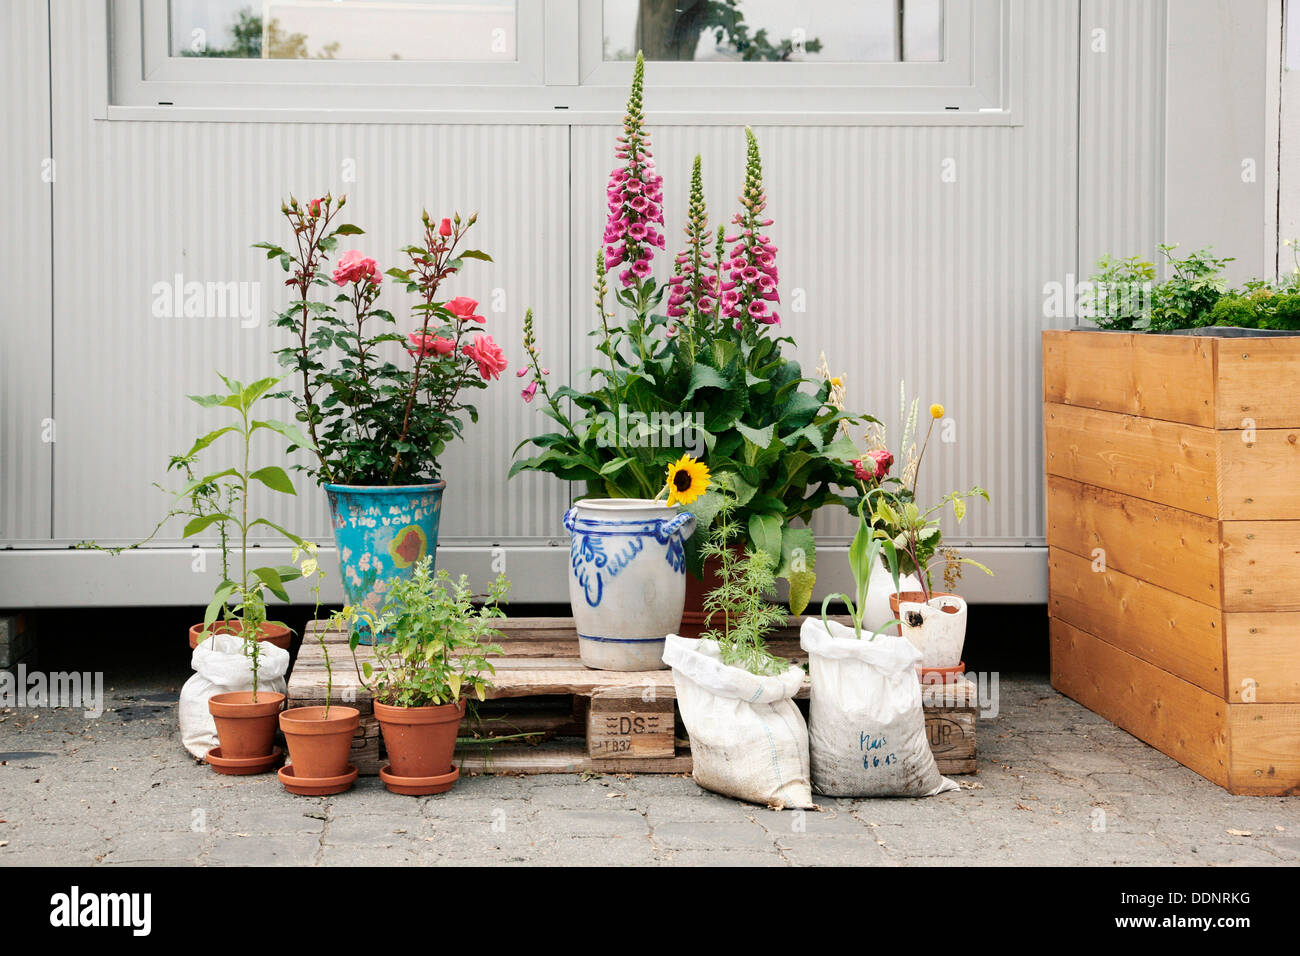 urban gardening frankfurt am main hesse germany europe stock photo royalty free image. Black Bedroom Furniture Sets. Home Design Ideas